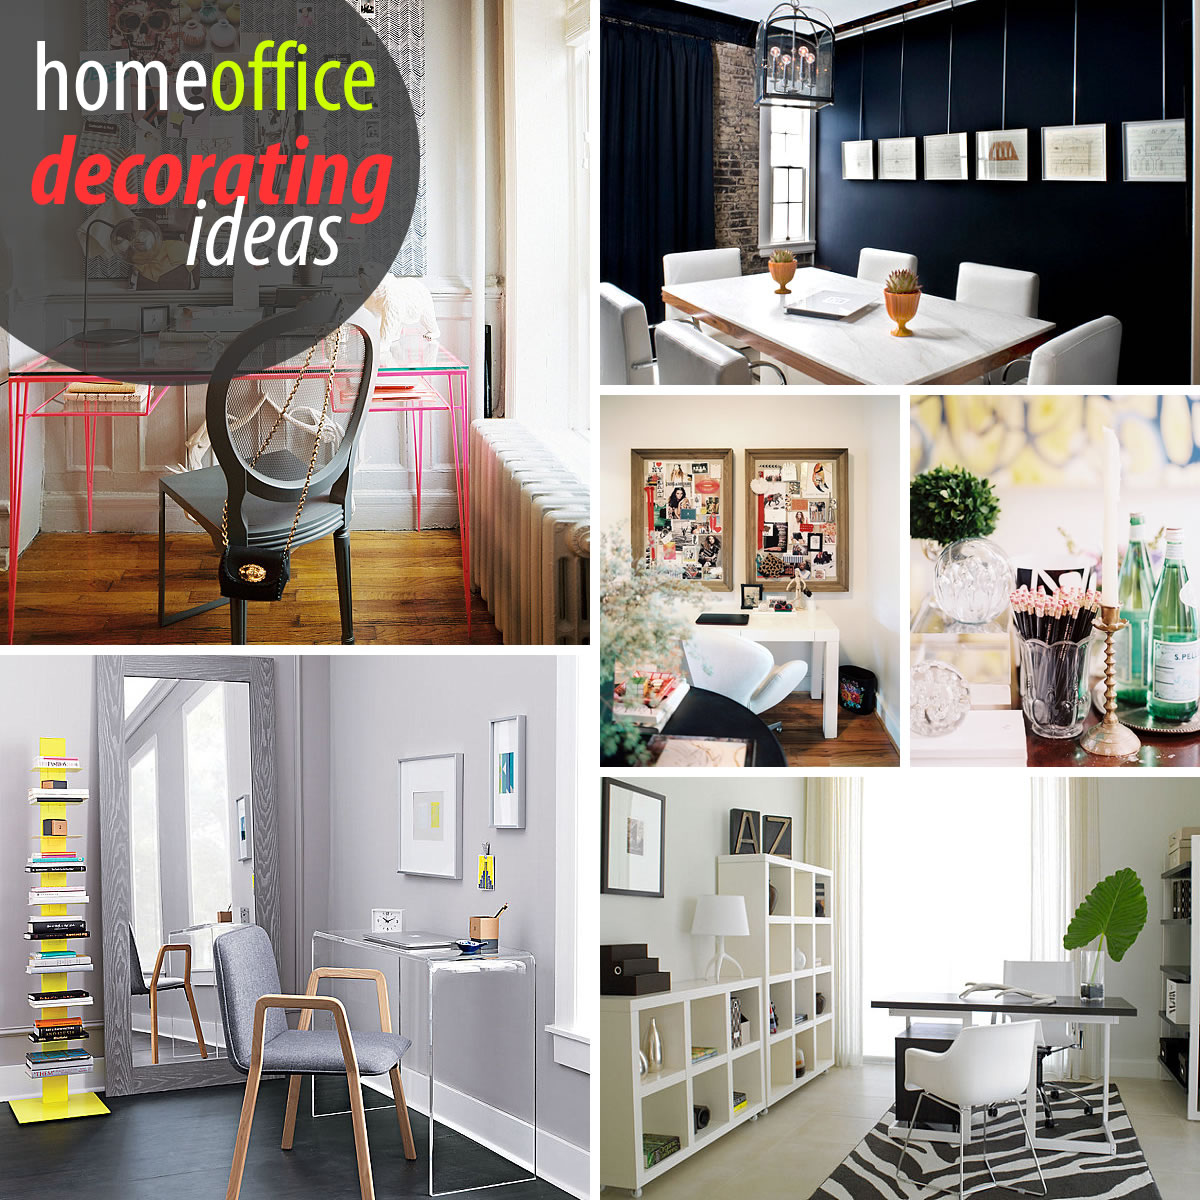 Creative home office decorating ideas for Home office designs ideas